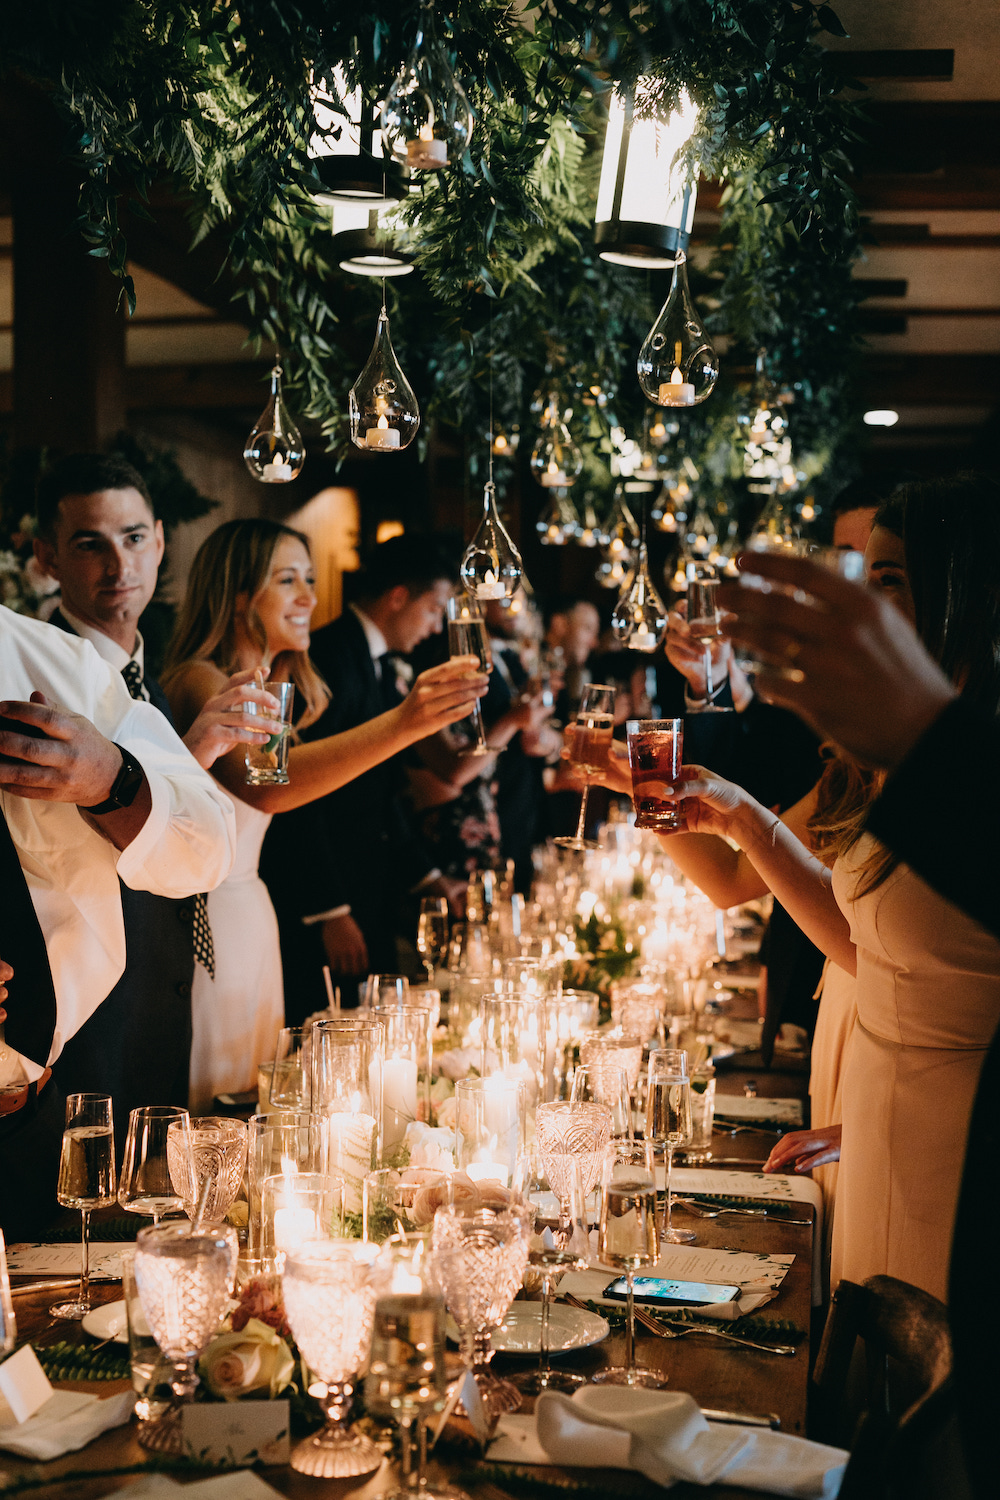 Guests cheers beneath hanging greenery and lighting.